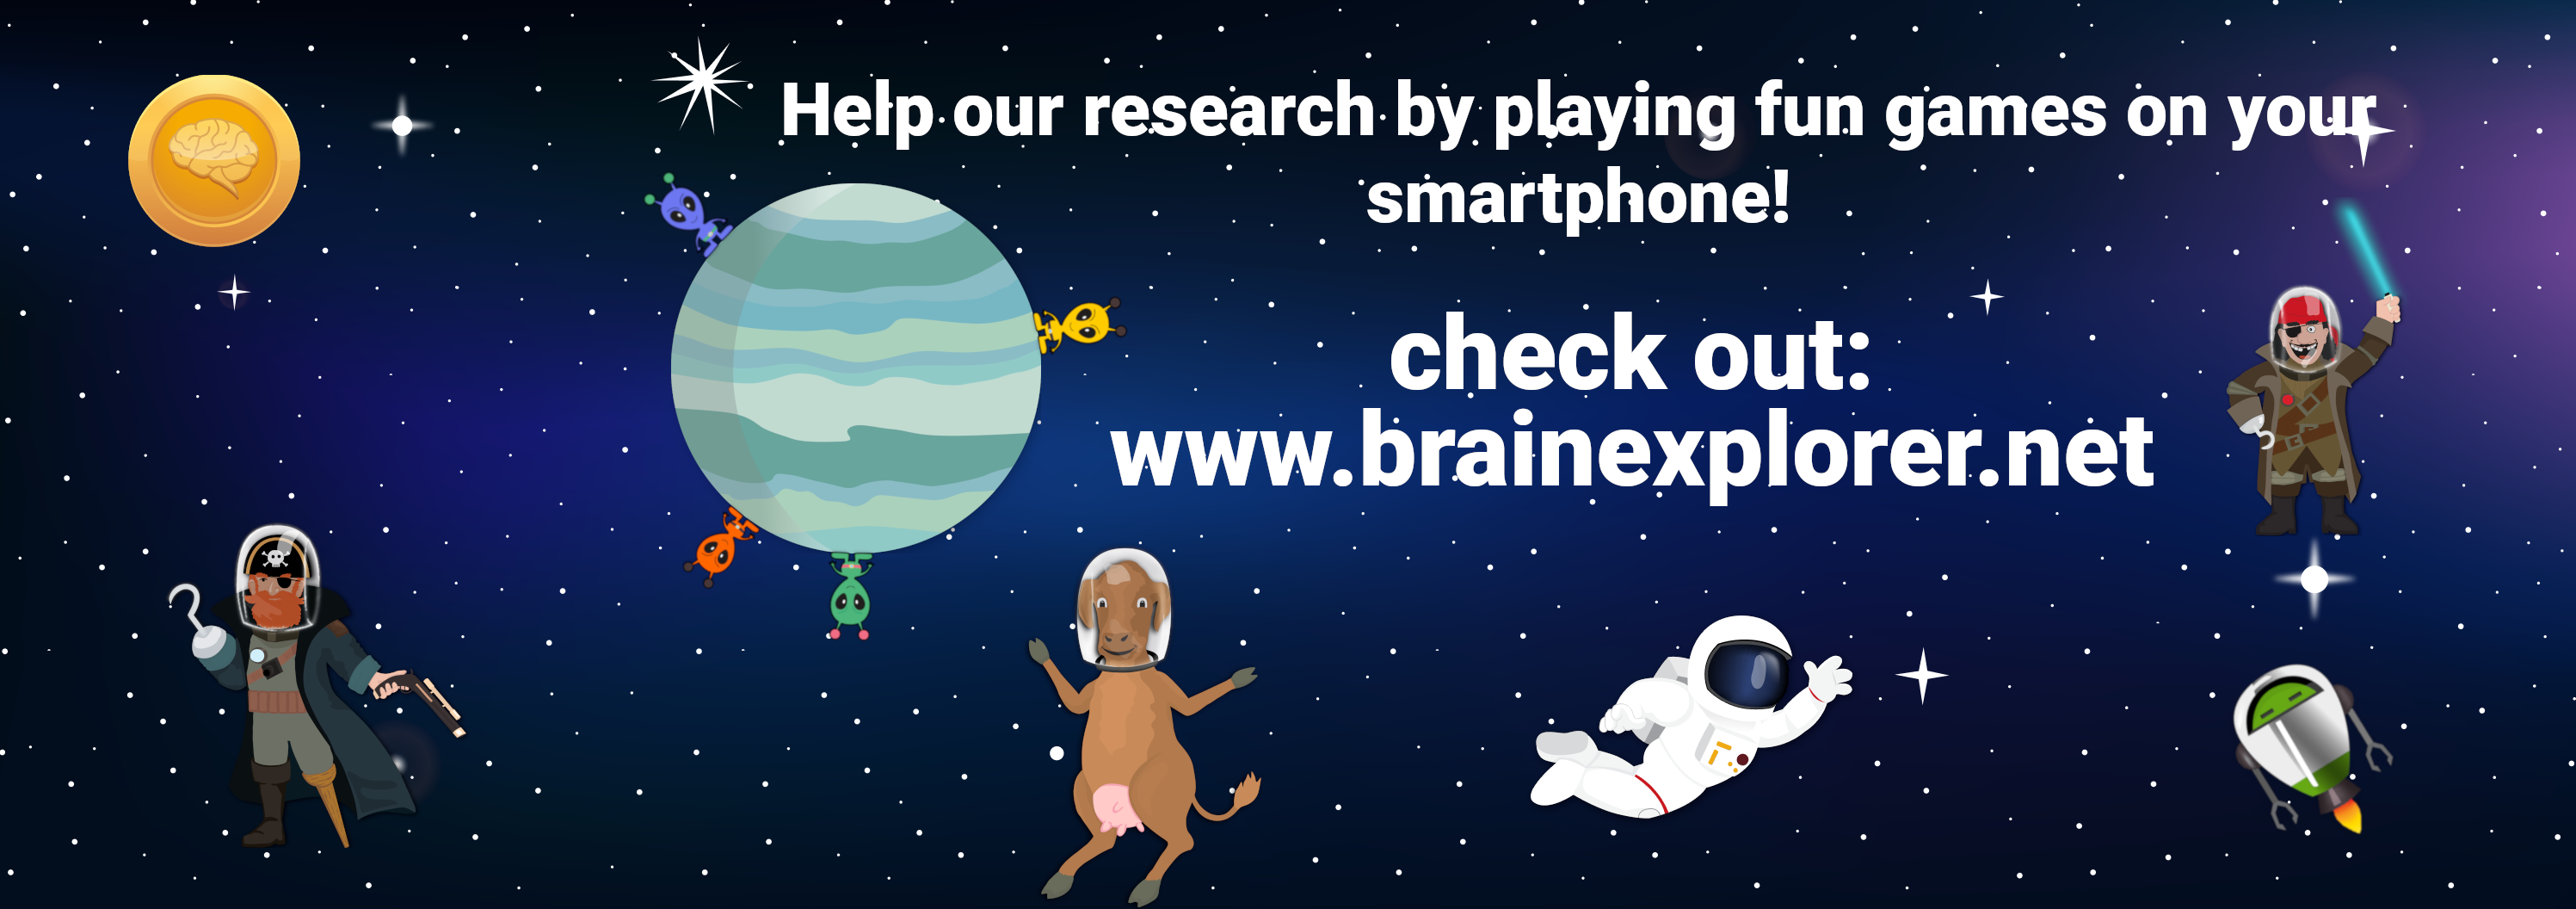 www.brainexplorer.net